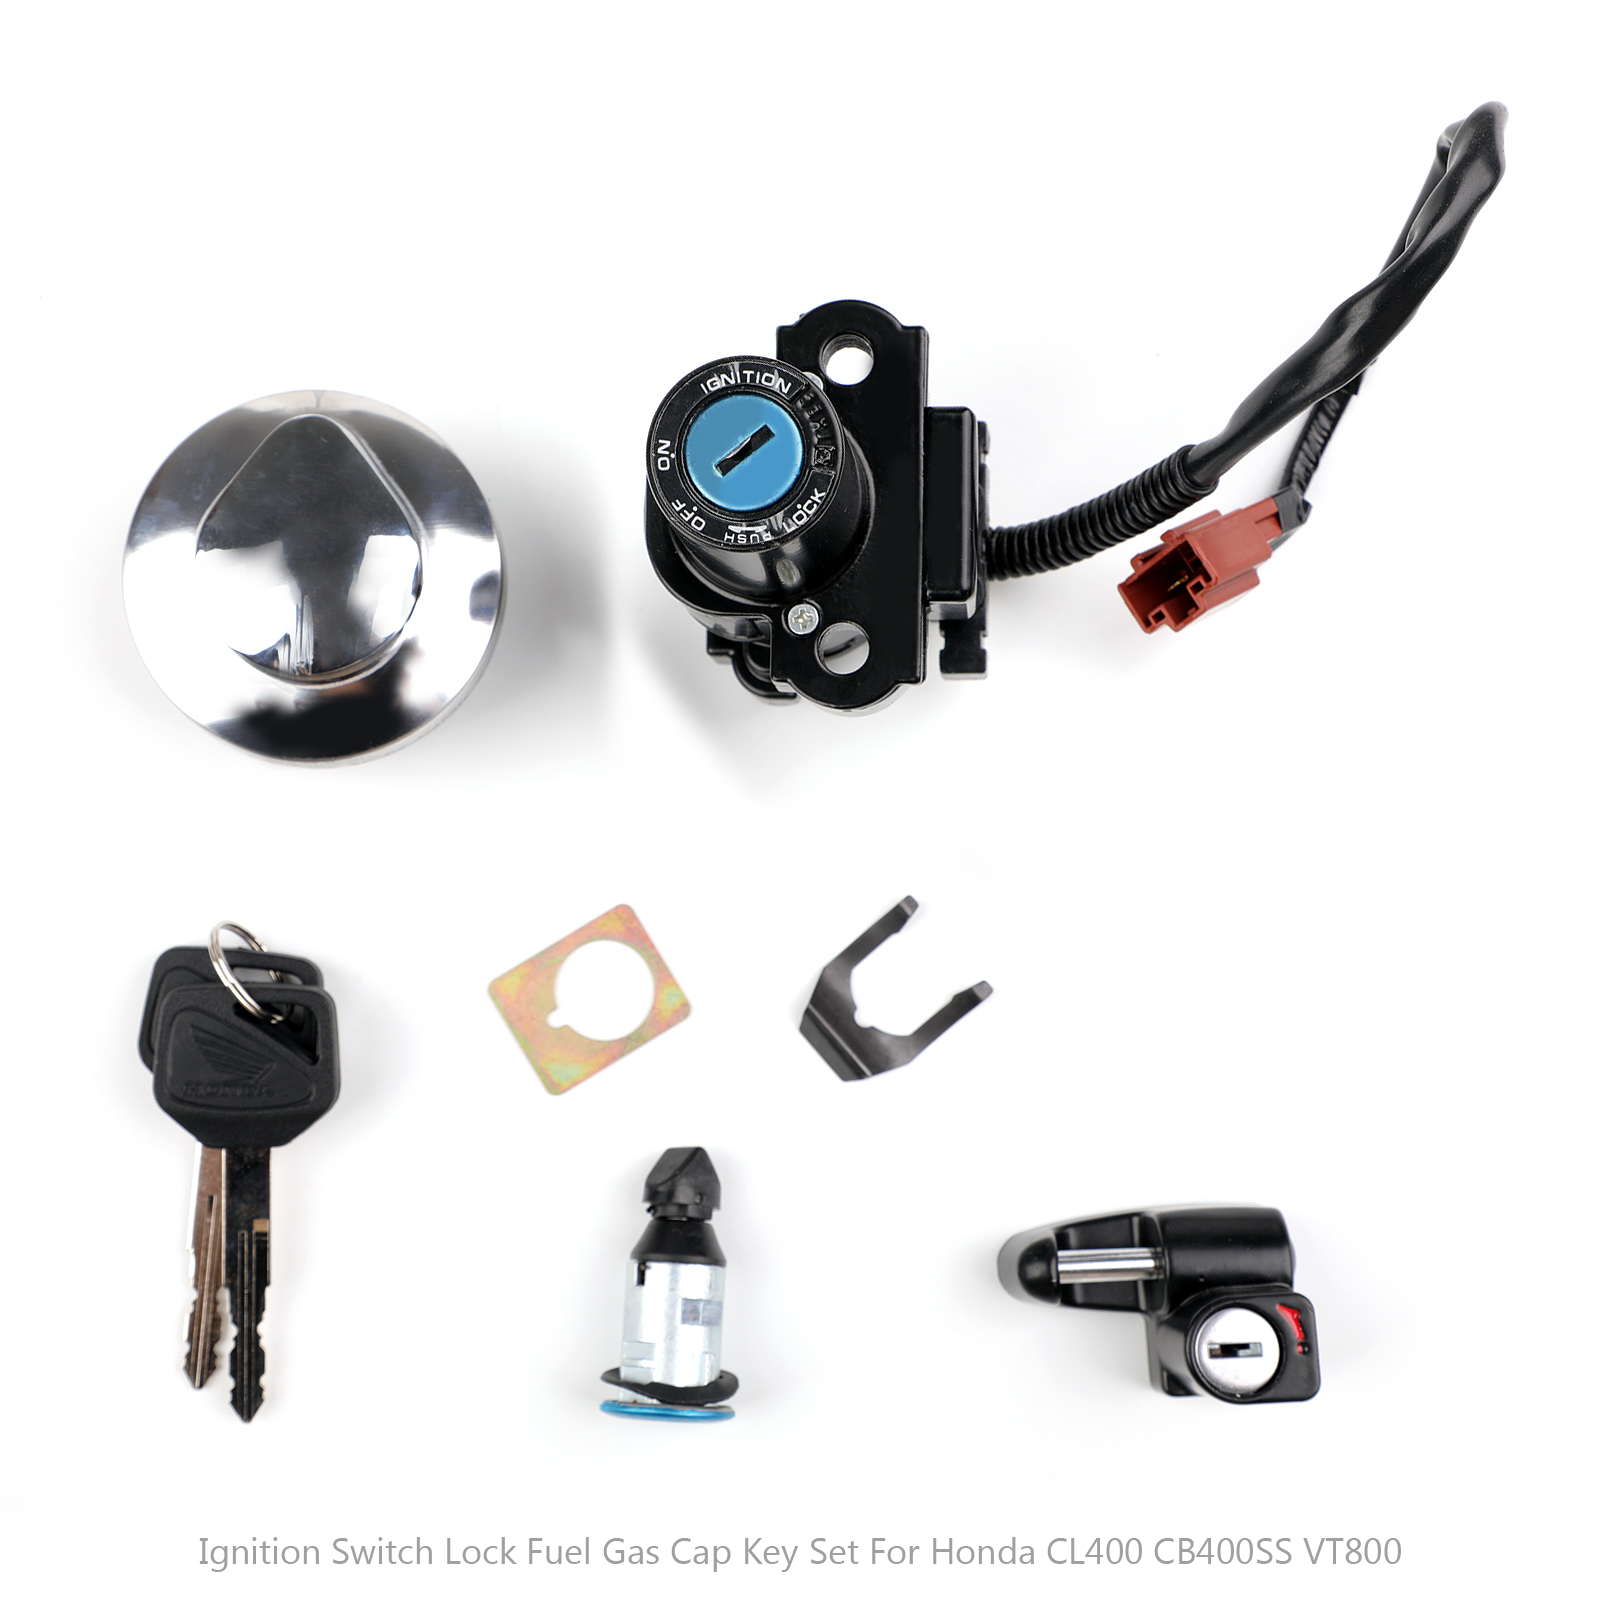 Unlimited Rider 5 Wire Ignition Switch Fuel Gas Cap Keys Helmet Seat Lock Key for Honda CMX250 Rebel CA125 1995-1999